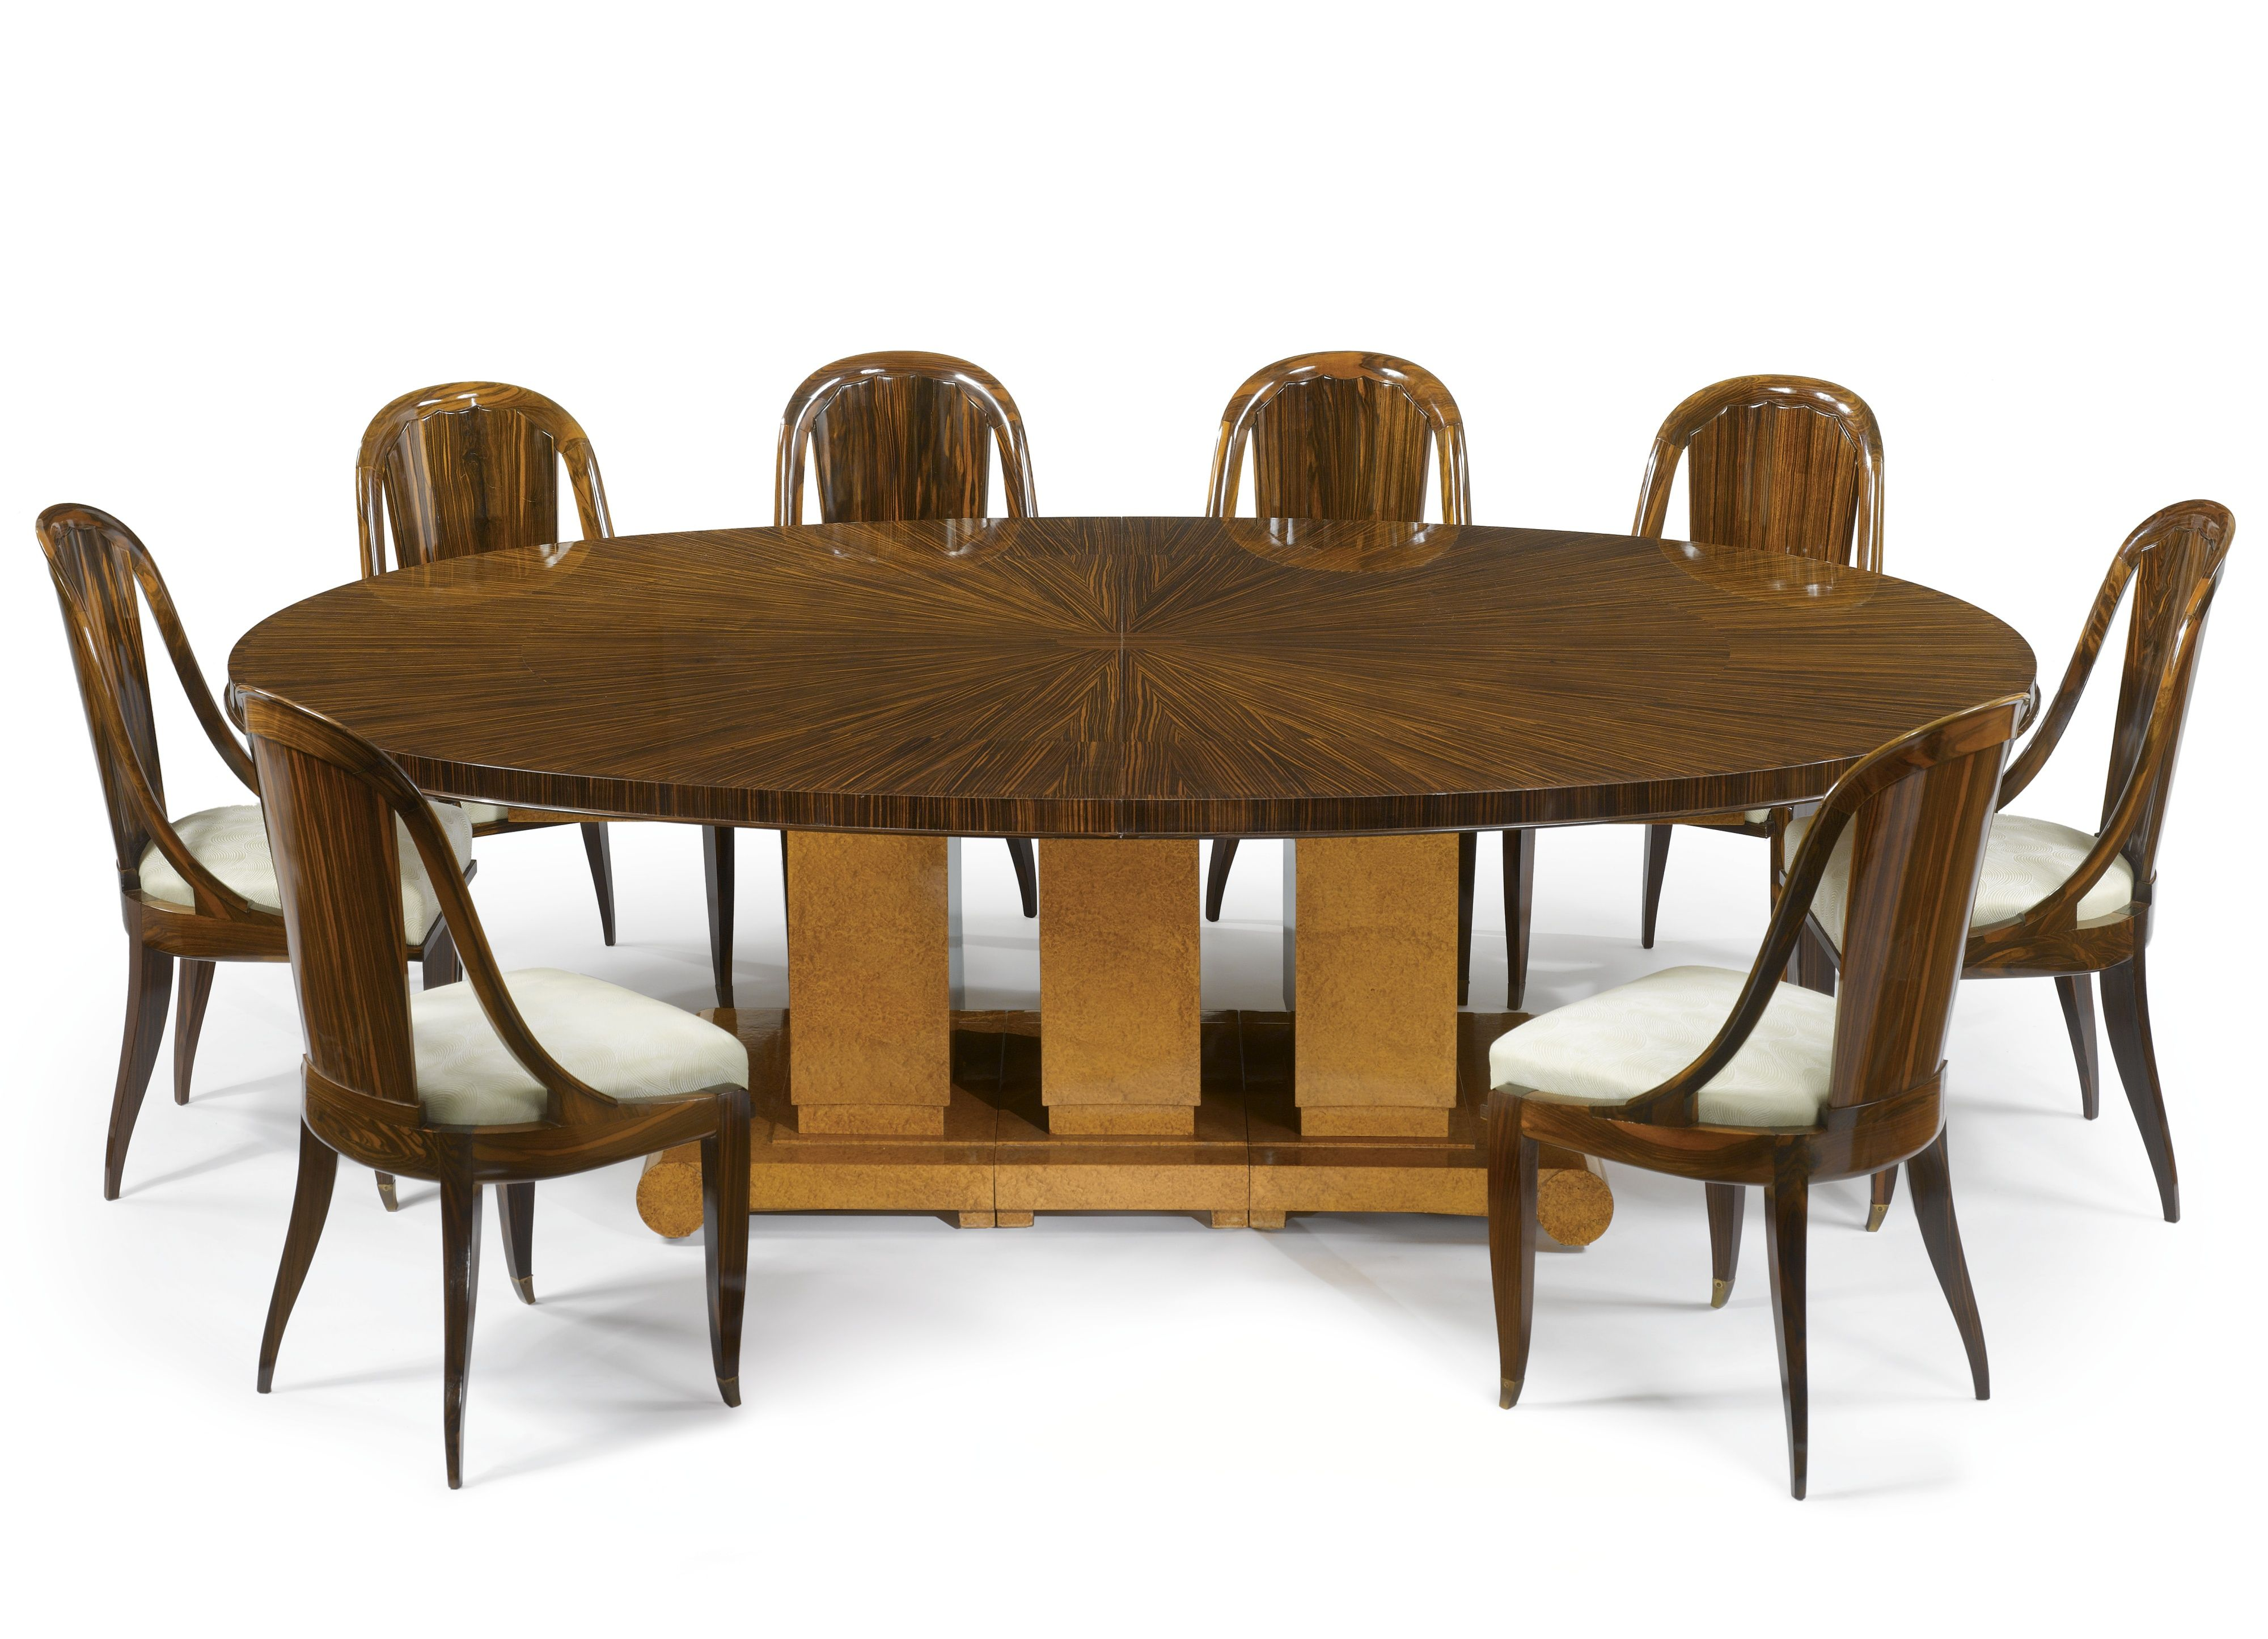 Émile Jacques Ruhlmann Dining Table Model 1314 Nr And Eight CannelÉe Chairs 77 Ar 88 Underside Of Top Branded Twice With